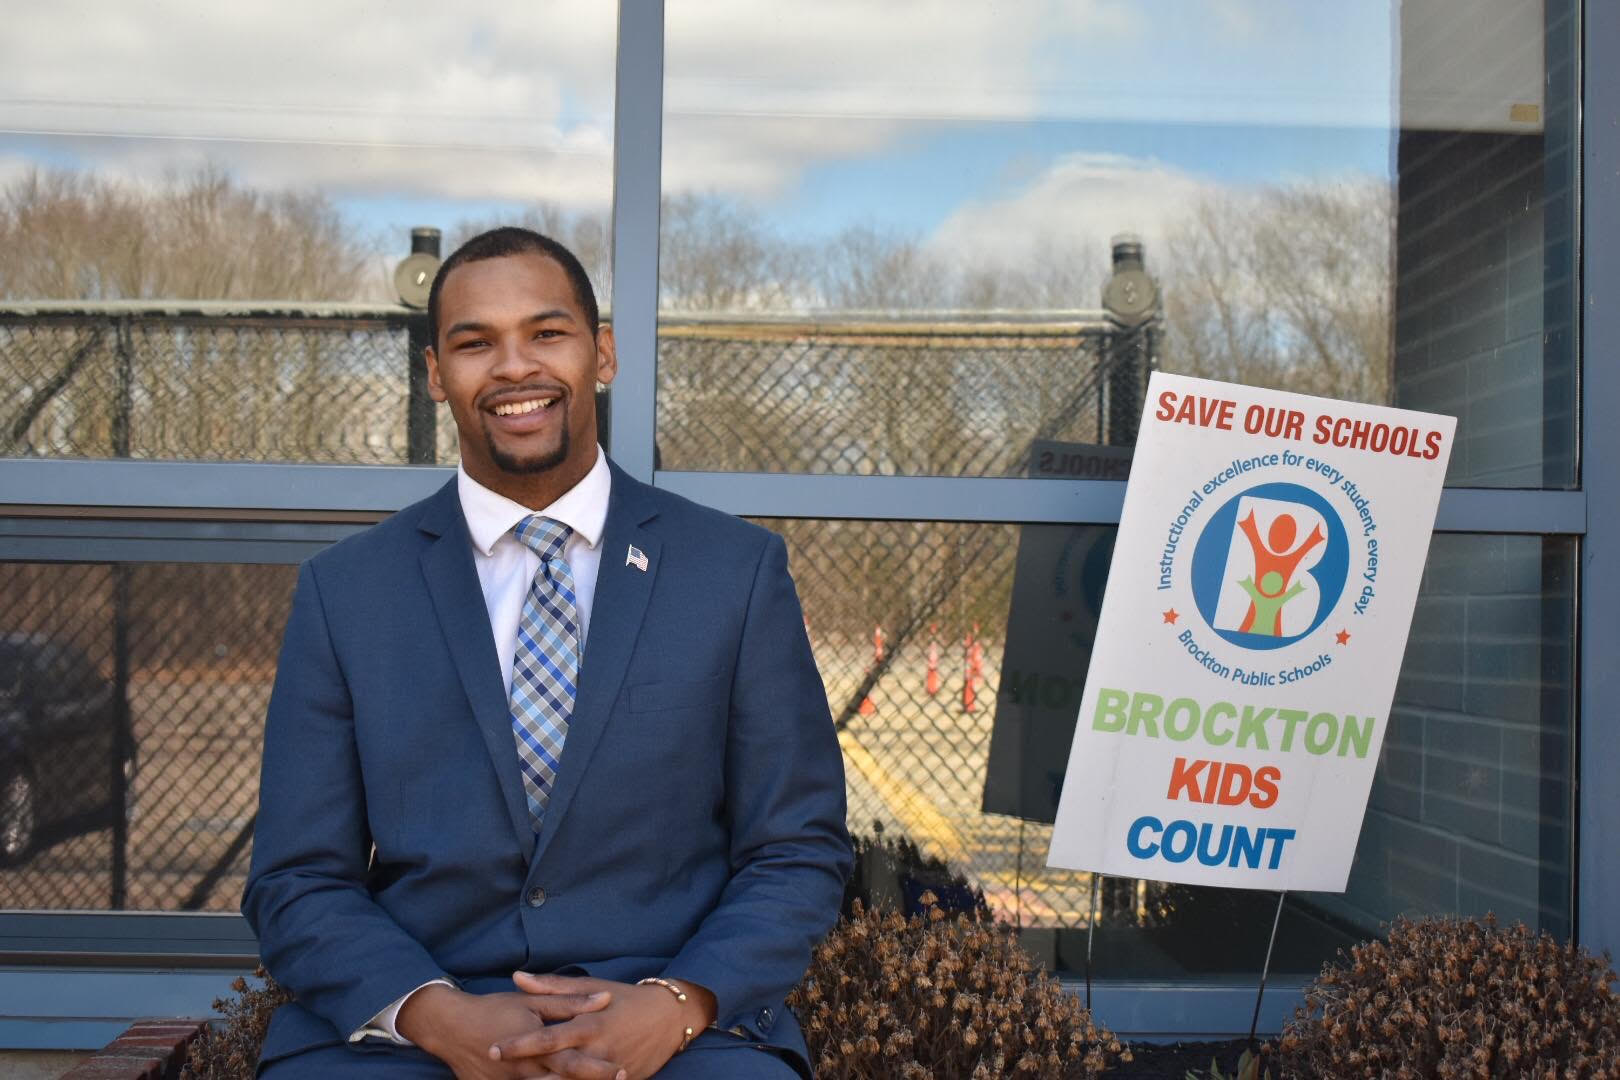 At 28, Jimmy Pereira could be the next mayor of Brockton, Massachusetts. A transportation planner focused on environmental justice, he's tackled the issues affecting the health of his community. After over half a decade of public service, he's running to create a more accessible government for Brockton. -